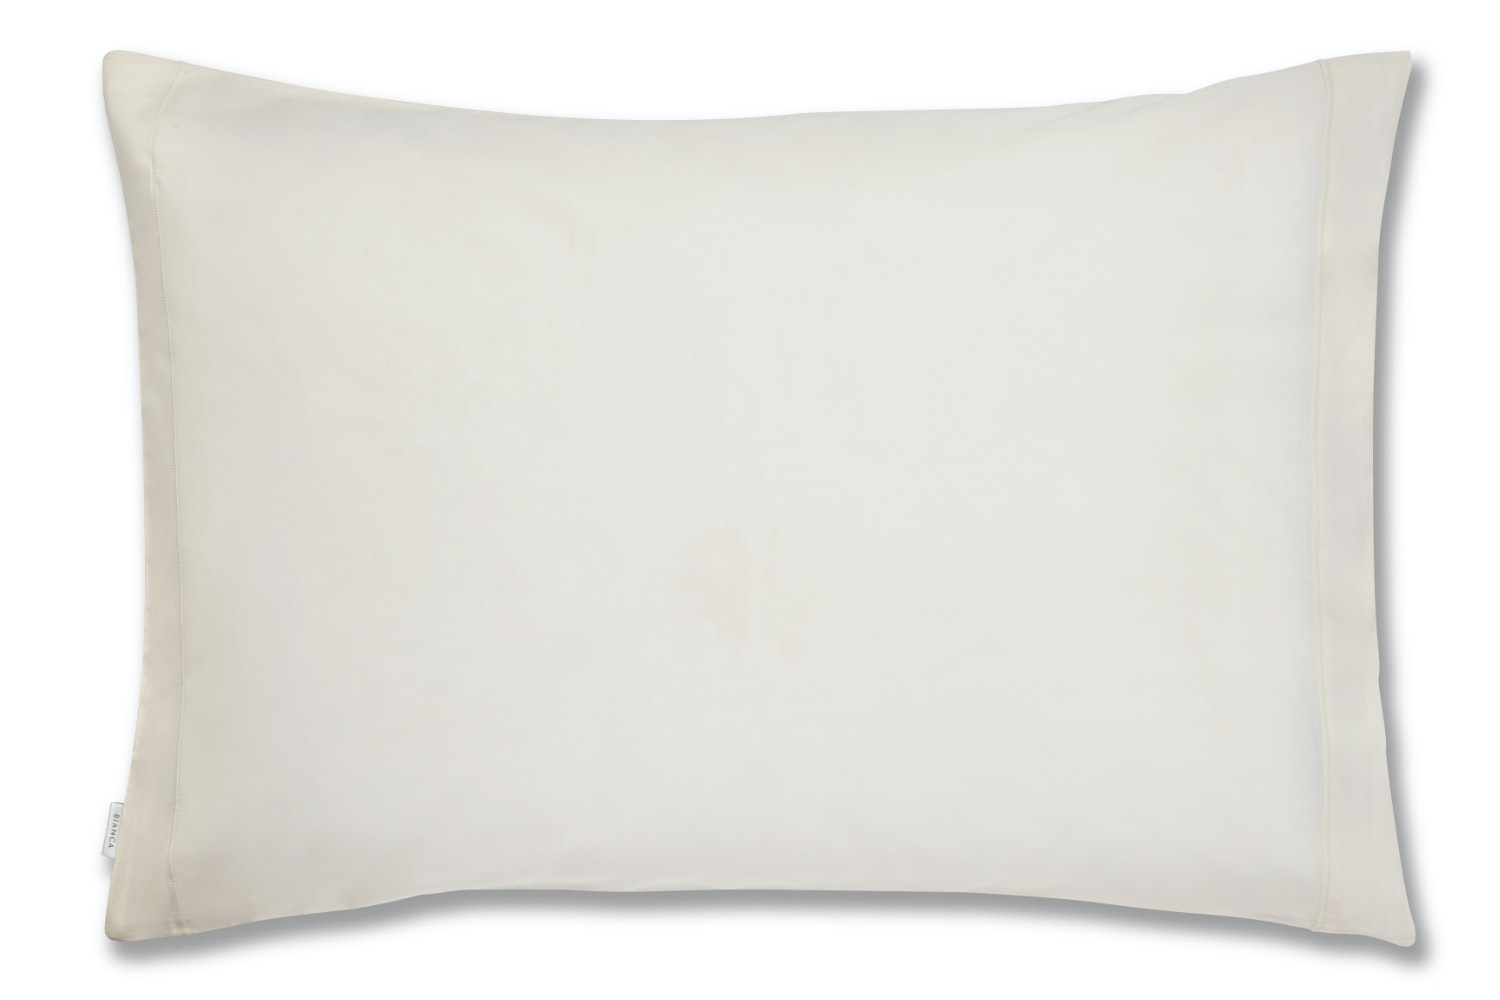 Cotton Soft Housewife Pillowcase | Cream